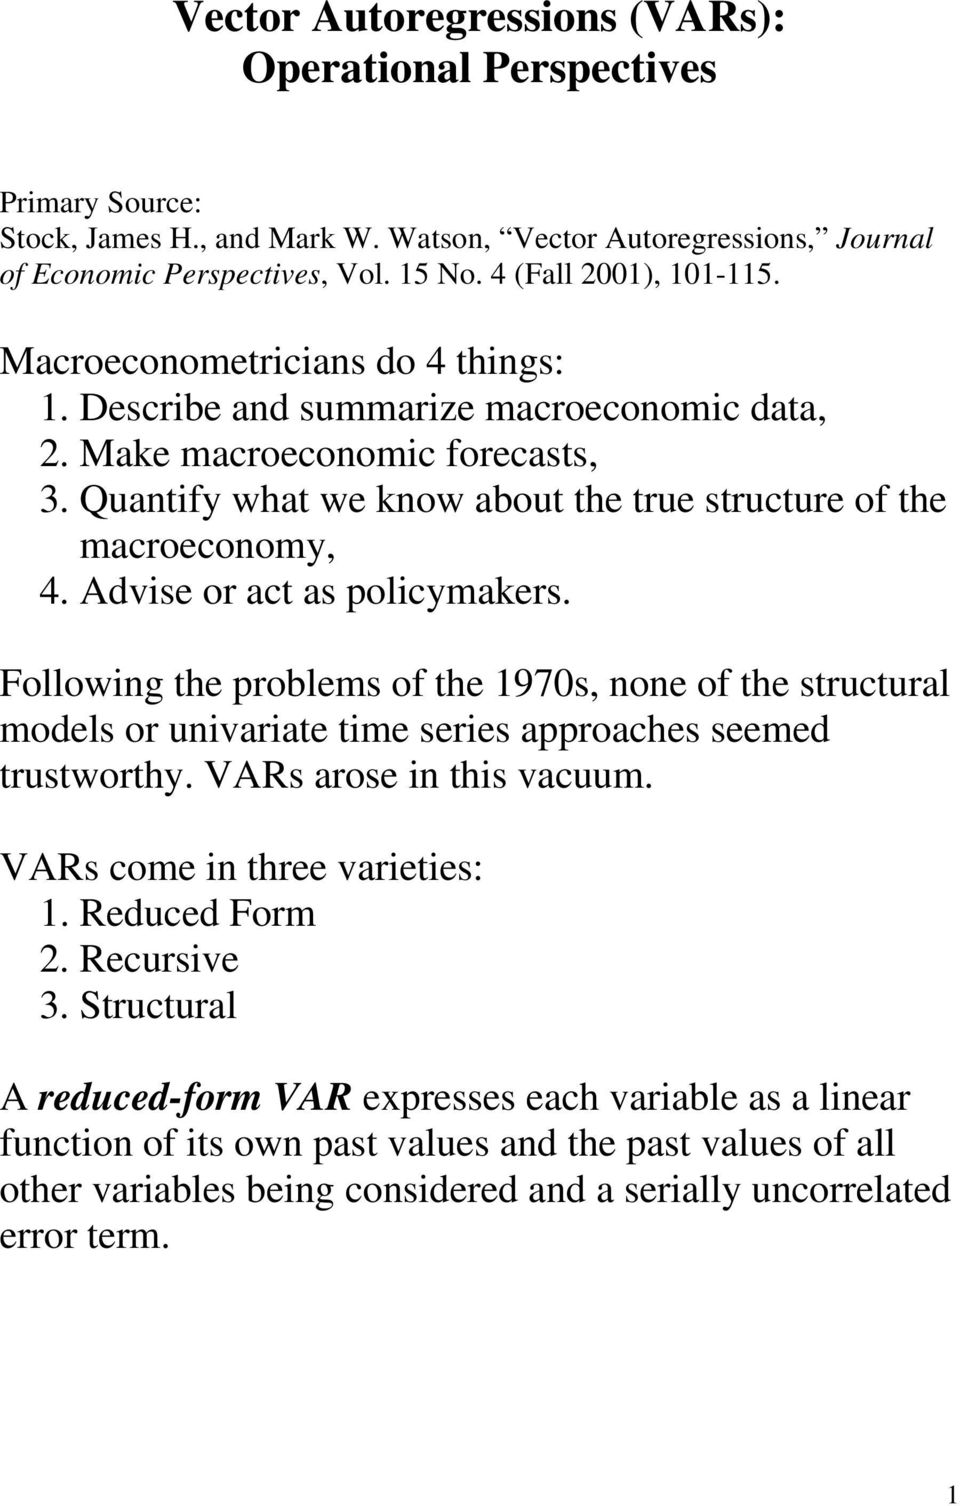 Advise or ac as policymakers. Following he problems of he 1970s, none of he srucural models or univariae ime series approaches seemed rusworhy. VARs arose in his vacuum.